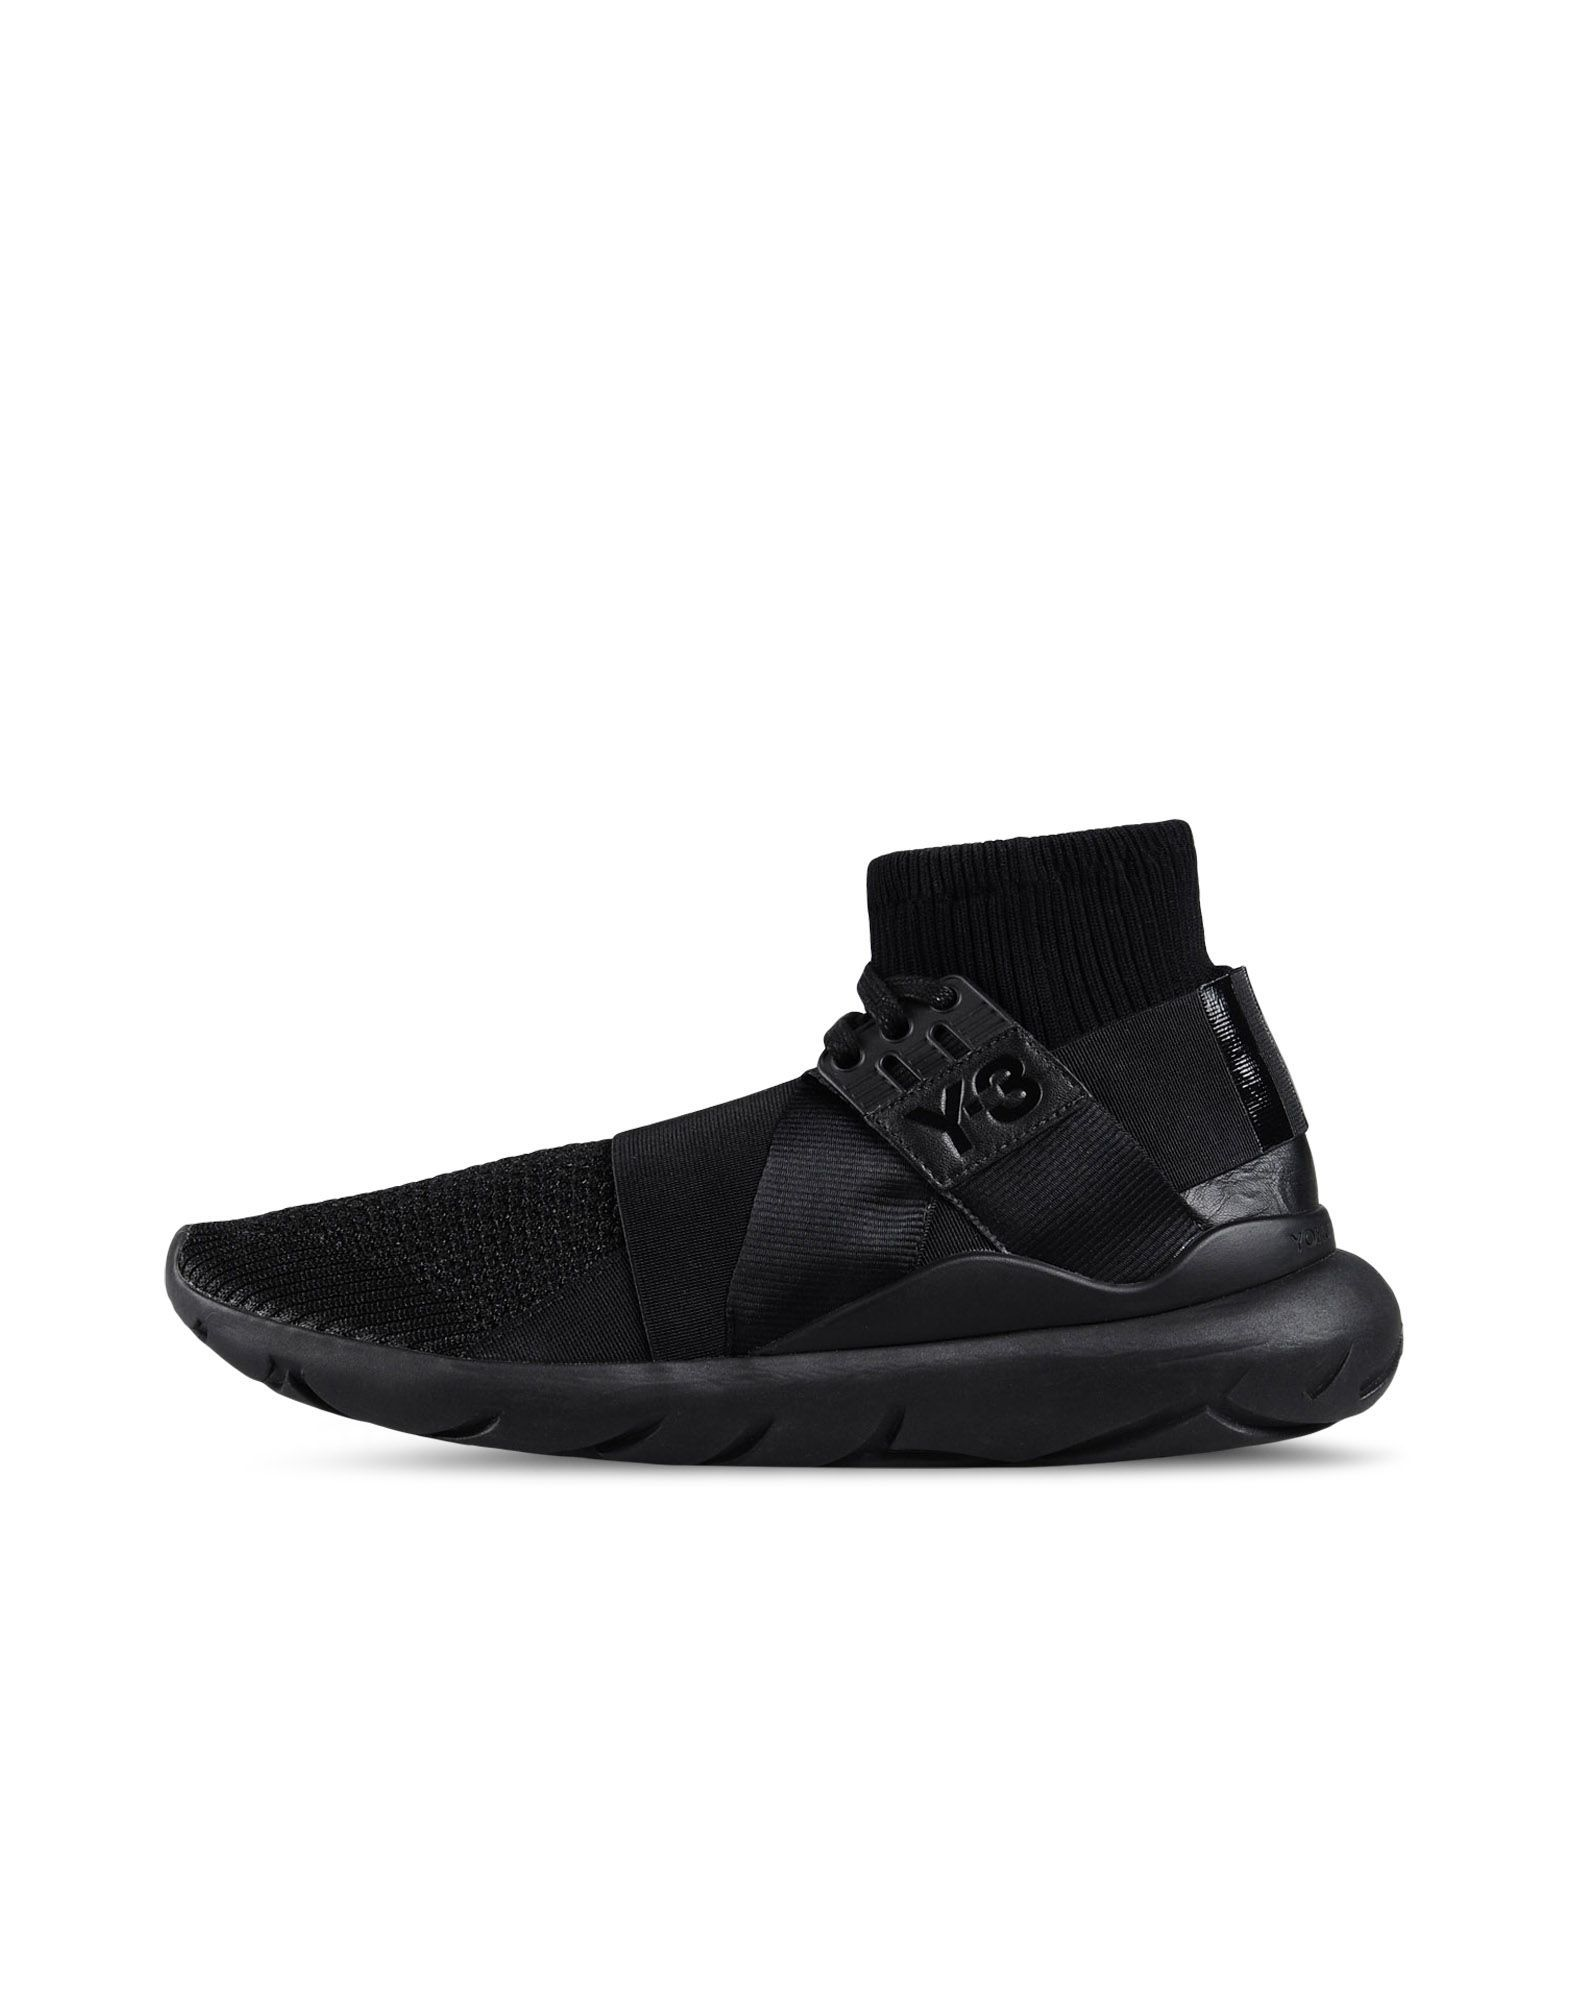 Best -selling Womens Y-3 'qasa Elle' Boots 2017 New